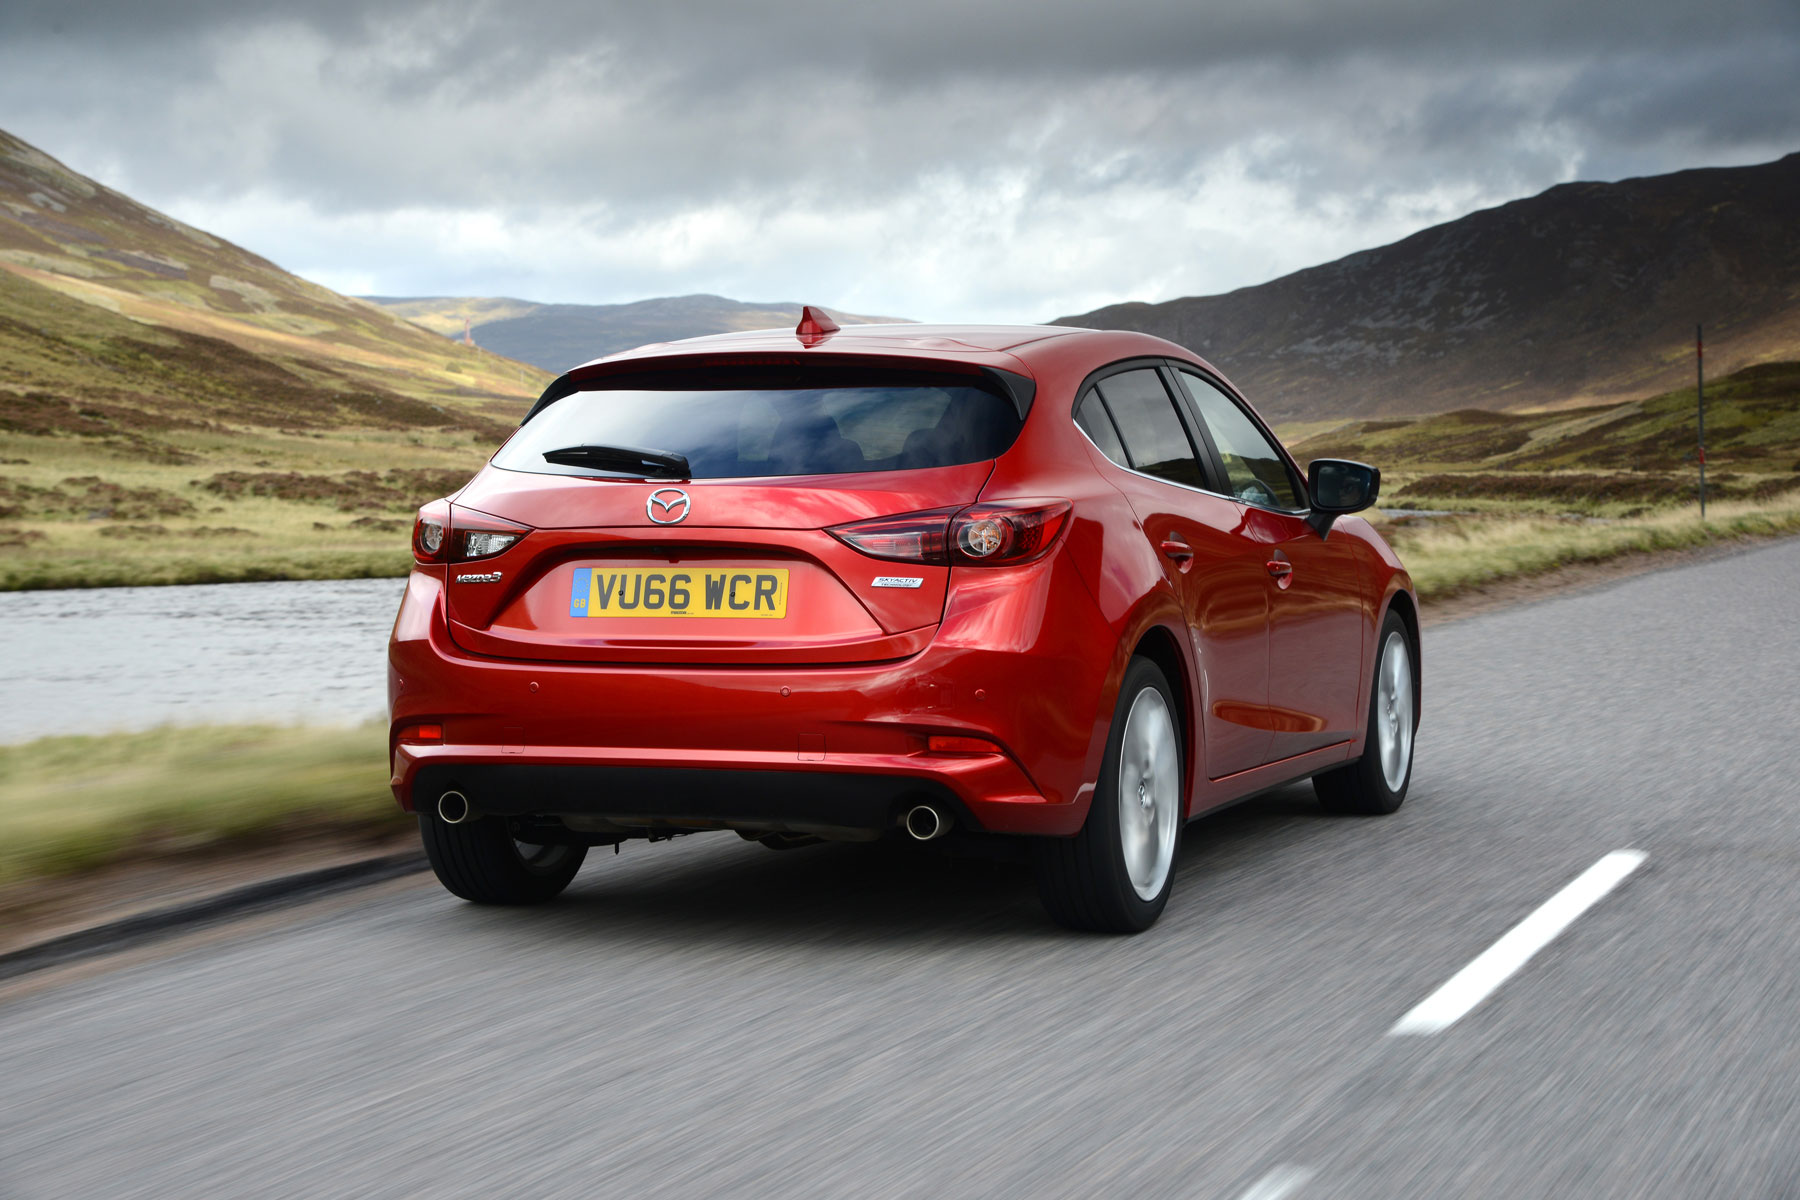 mazda 3 2 0 sport nav quick review the underdog hatchback. Black Bedroom Furniture Sets. Home Design Ideas